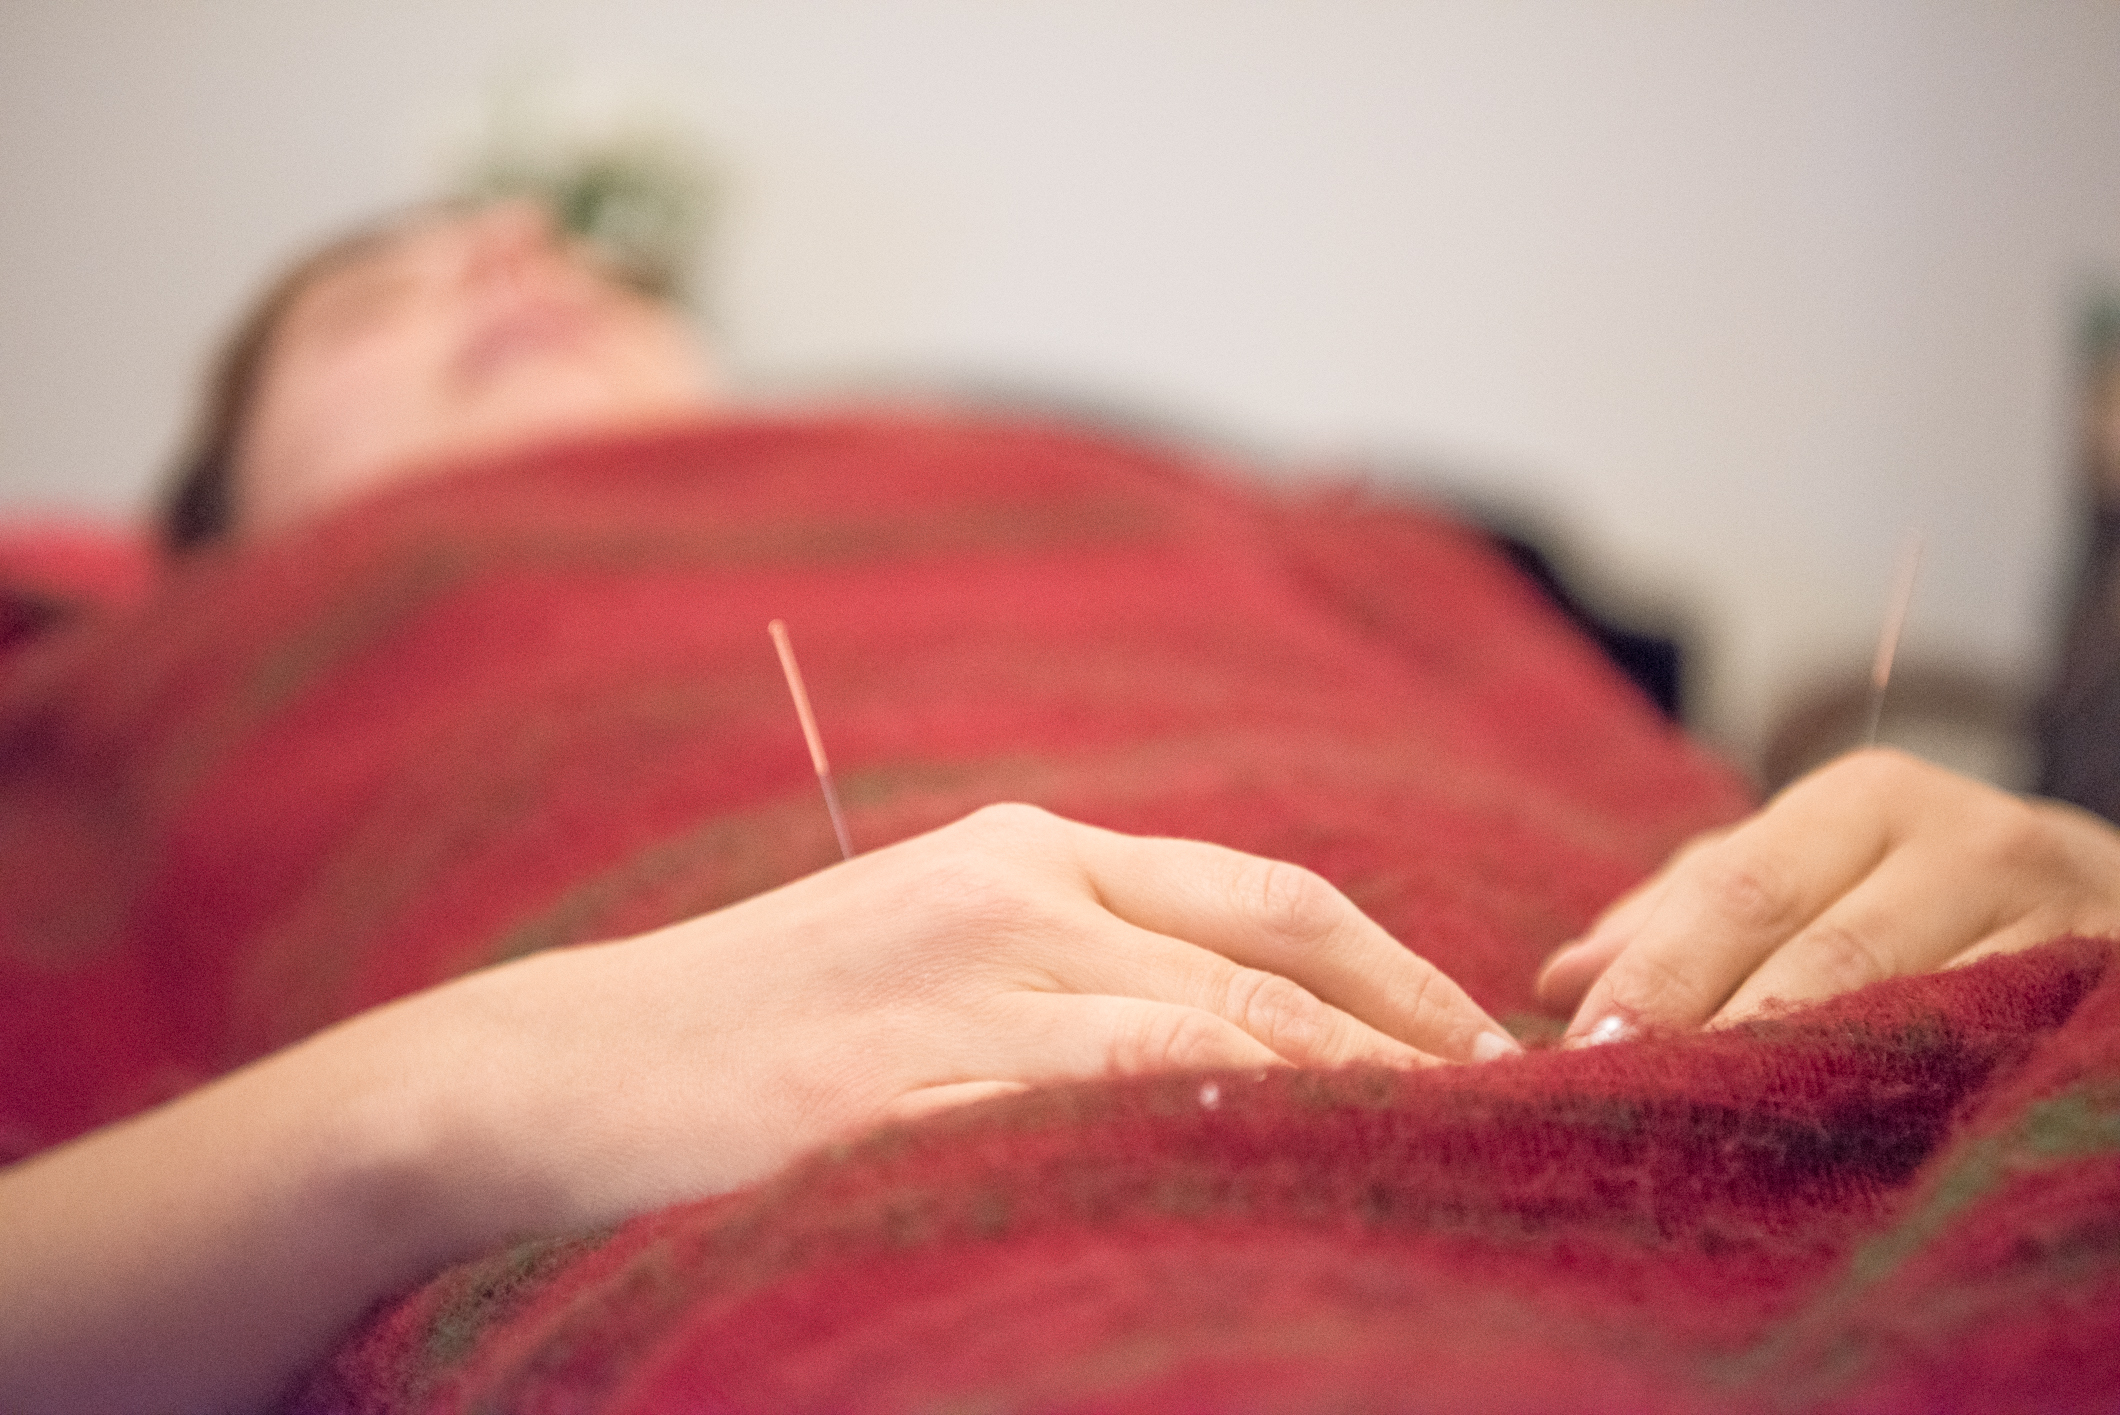 Acupuncture Relaxation Wellbeing